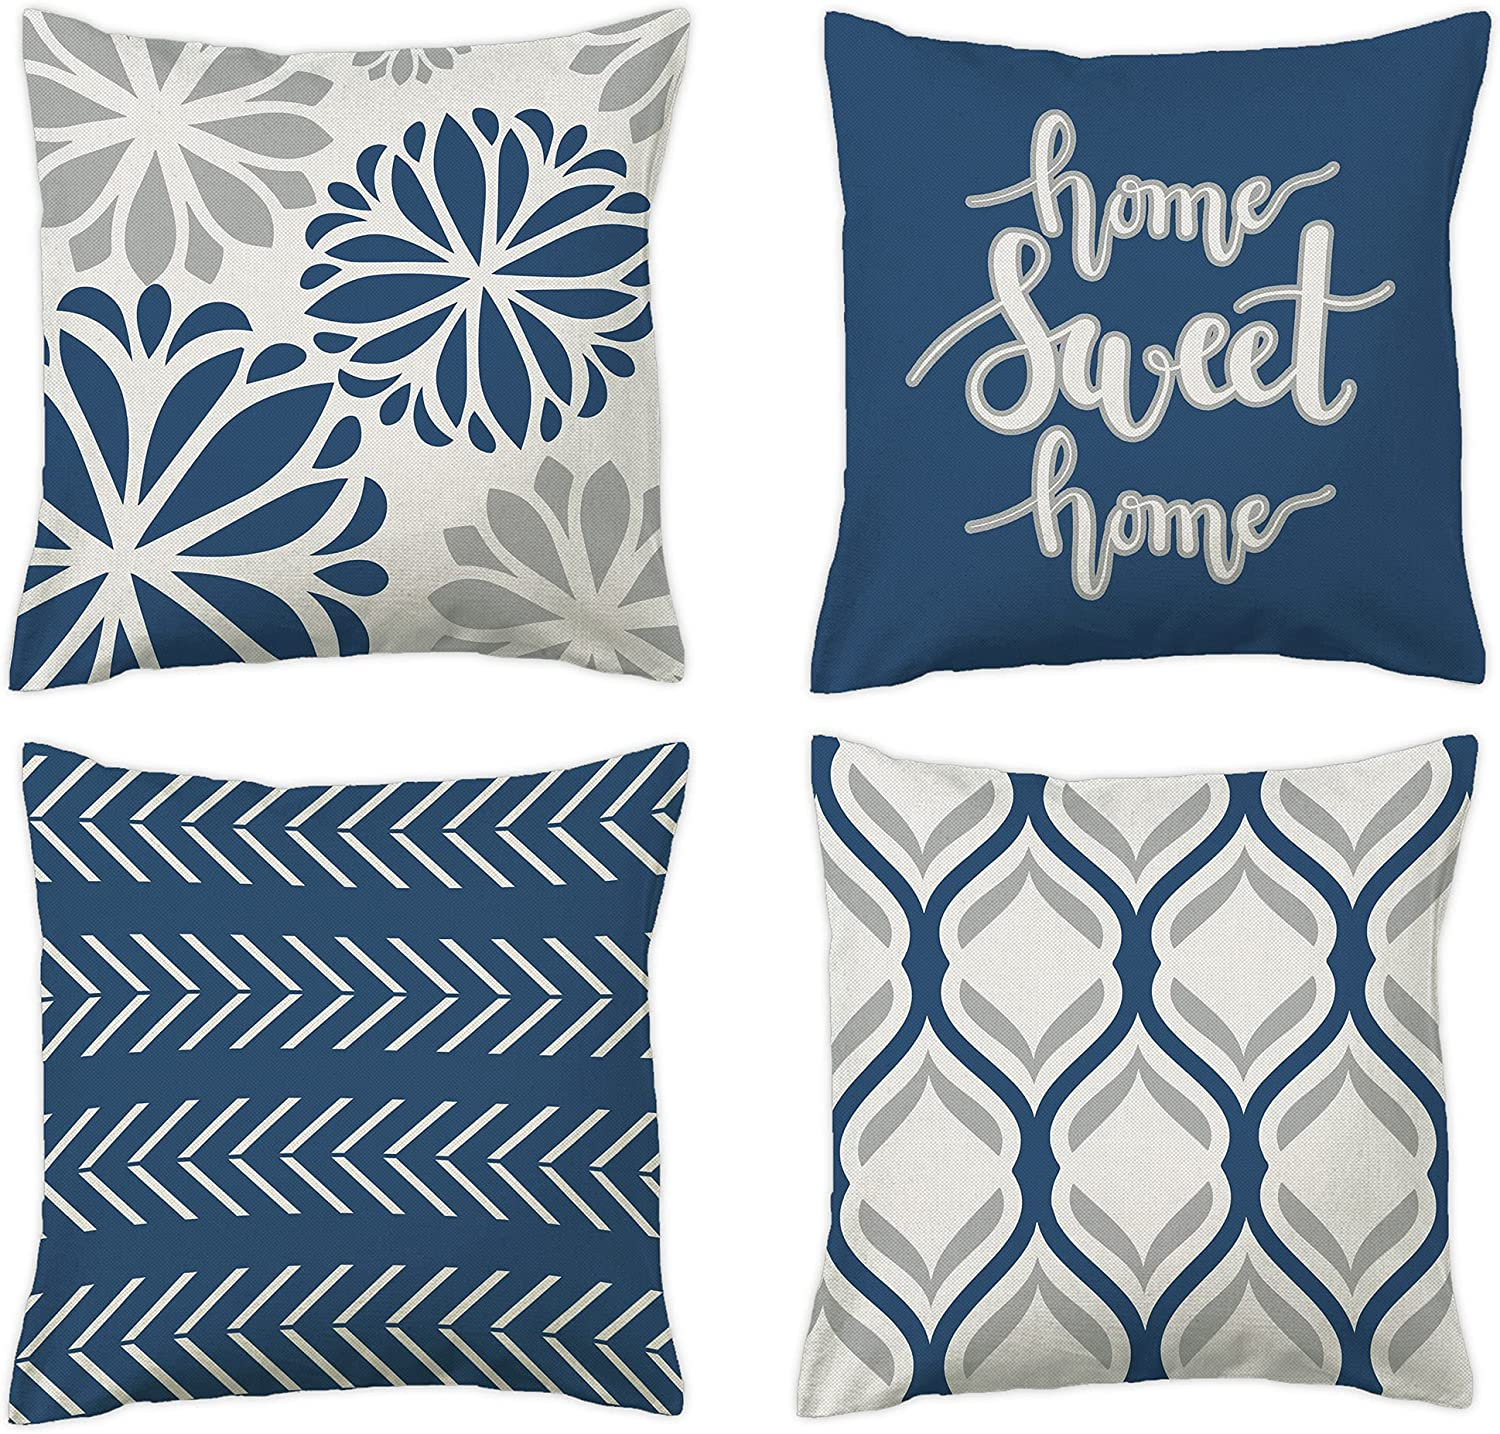 pinata Blue Throw Pillow Cover 18 X 18 Set of 4 Blue Gray Decorative Pillow Covers for Living Room Couch Sofa Bed, Morden Boho Accent Geometric Pillowcase for Outdoor Patio, Linen Blue Home Decor